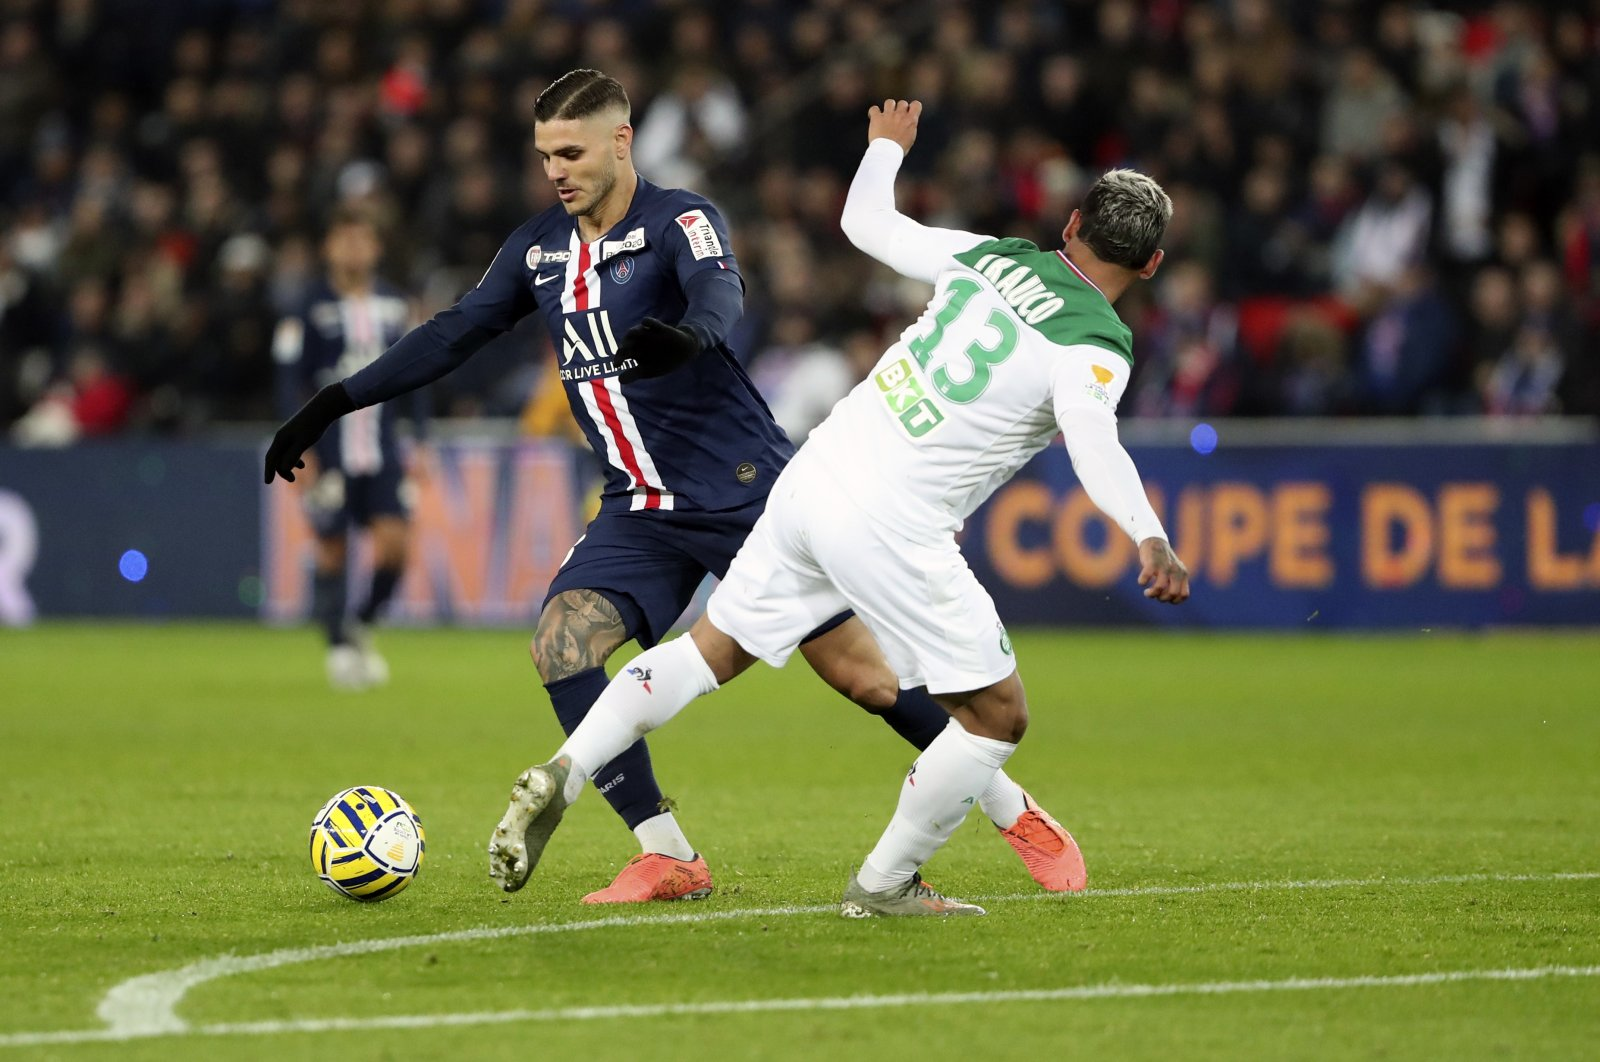 PSG's Mauro Icardi (L) goes past Saint-Etienne's Miguel Trauco during a French League Cup match in Paris, Jan. 8, 2020. (AP Photo)